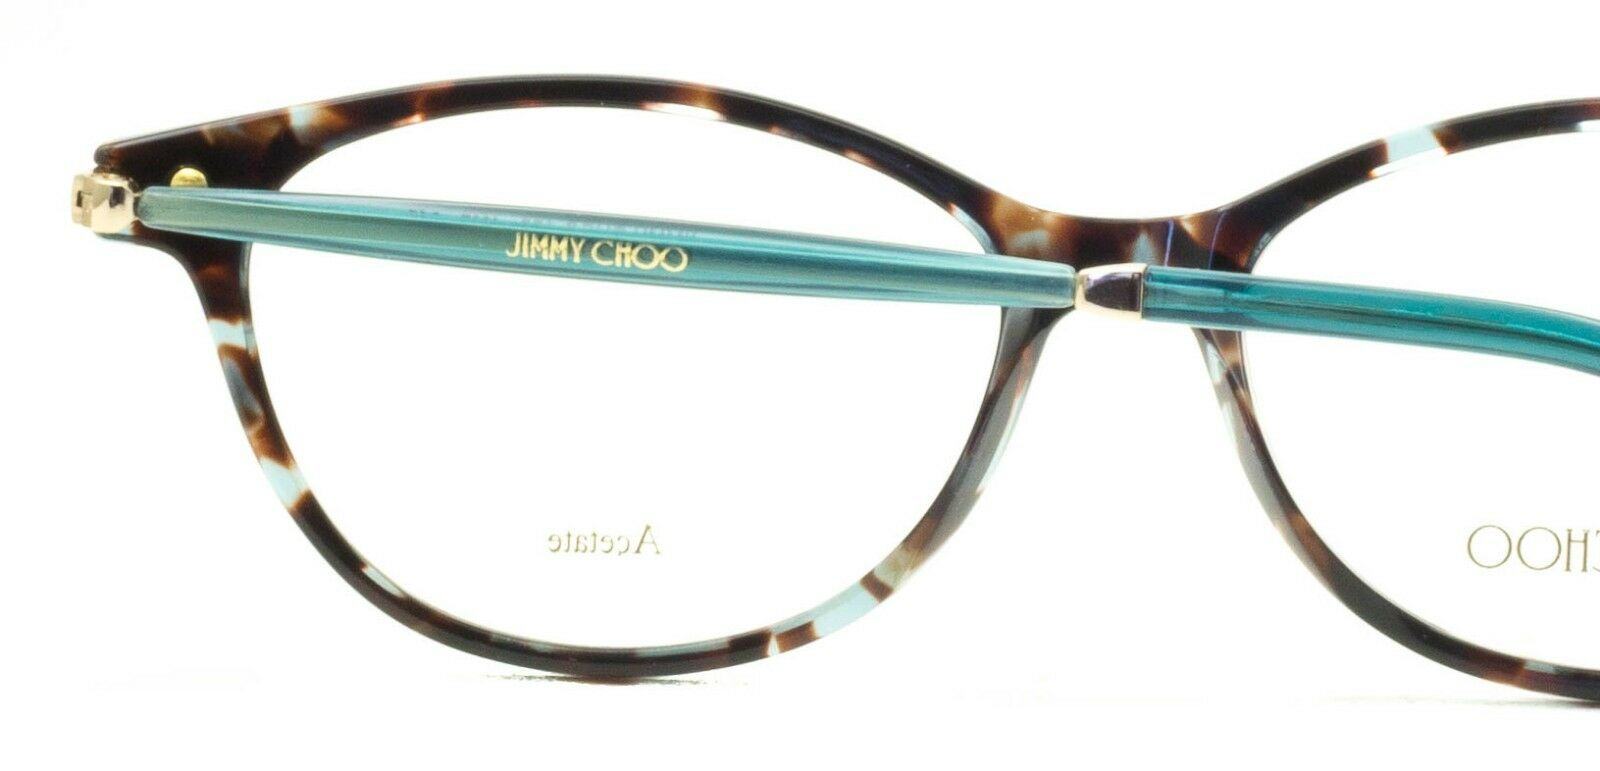 200320bad65 Jimmy Choo 153 1m5 Eyewear Glasses RX Optical Glasses Frames Italy ...